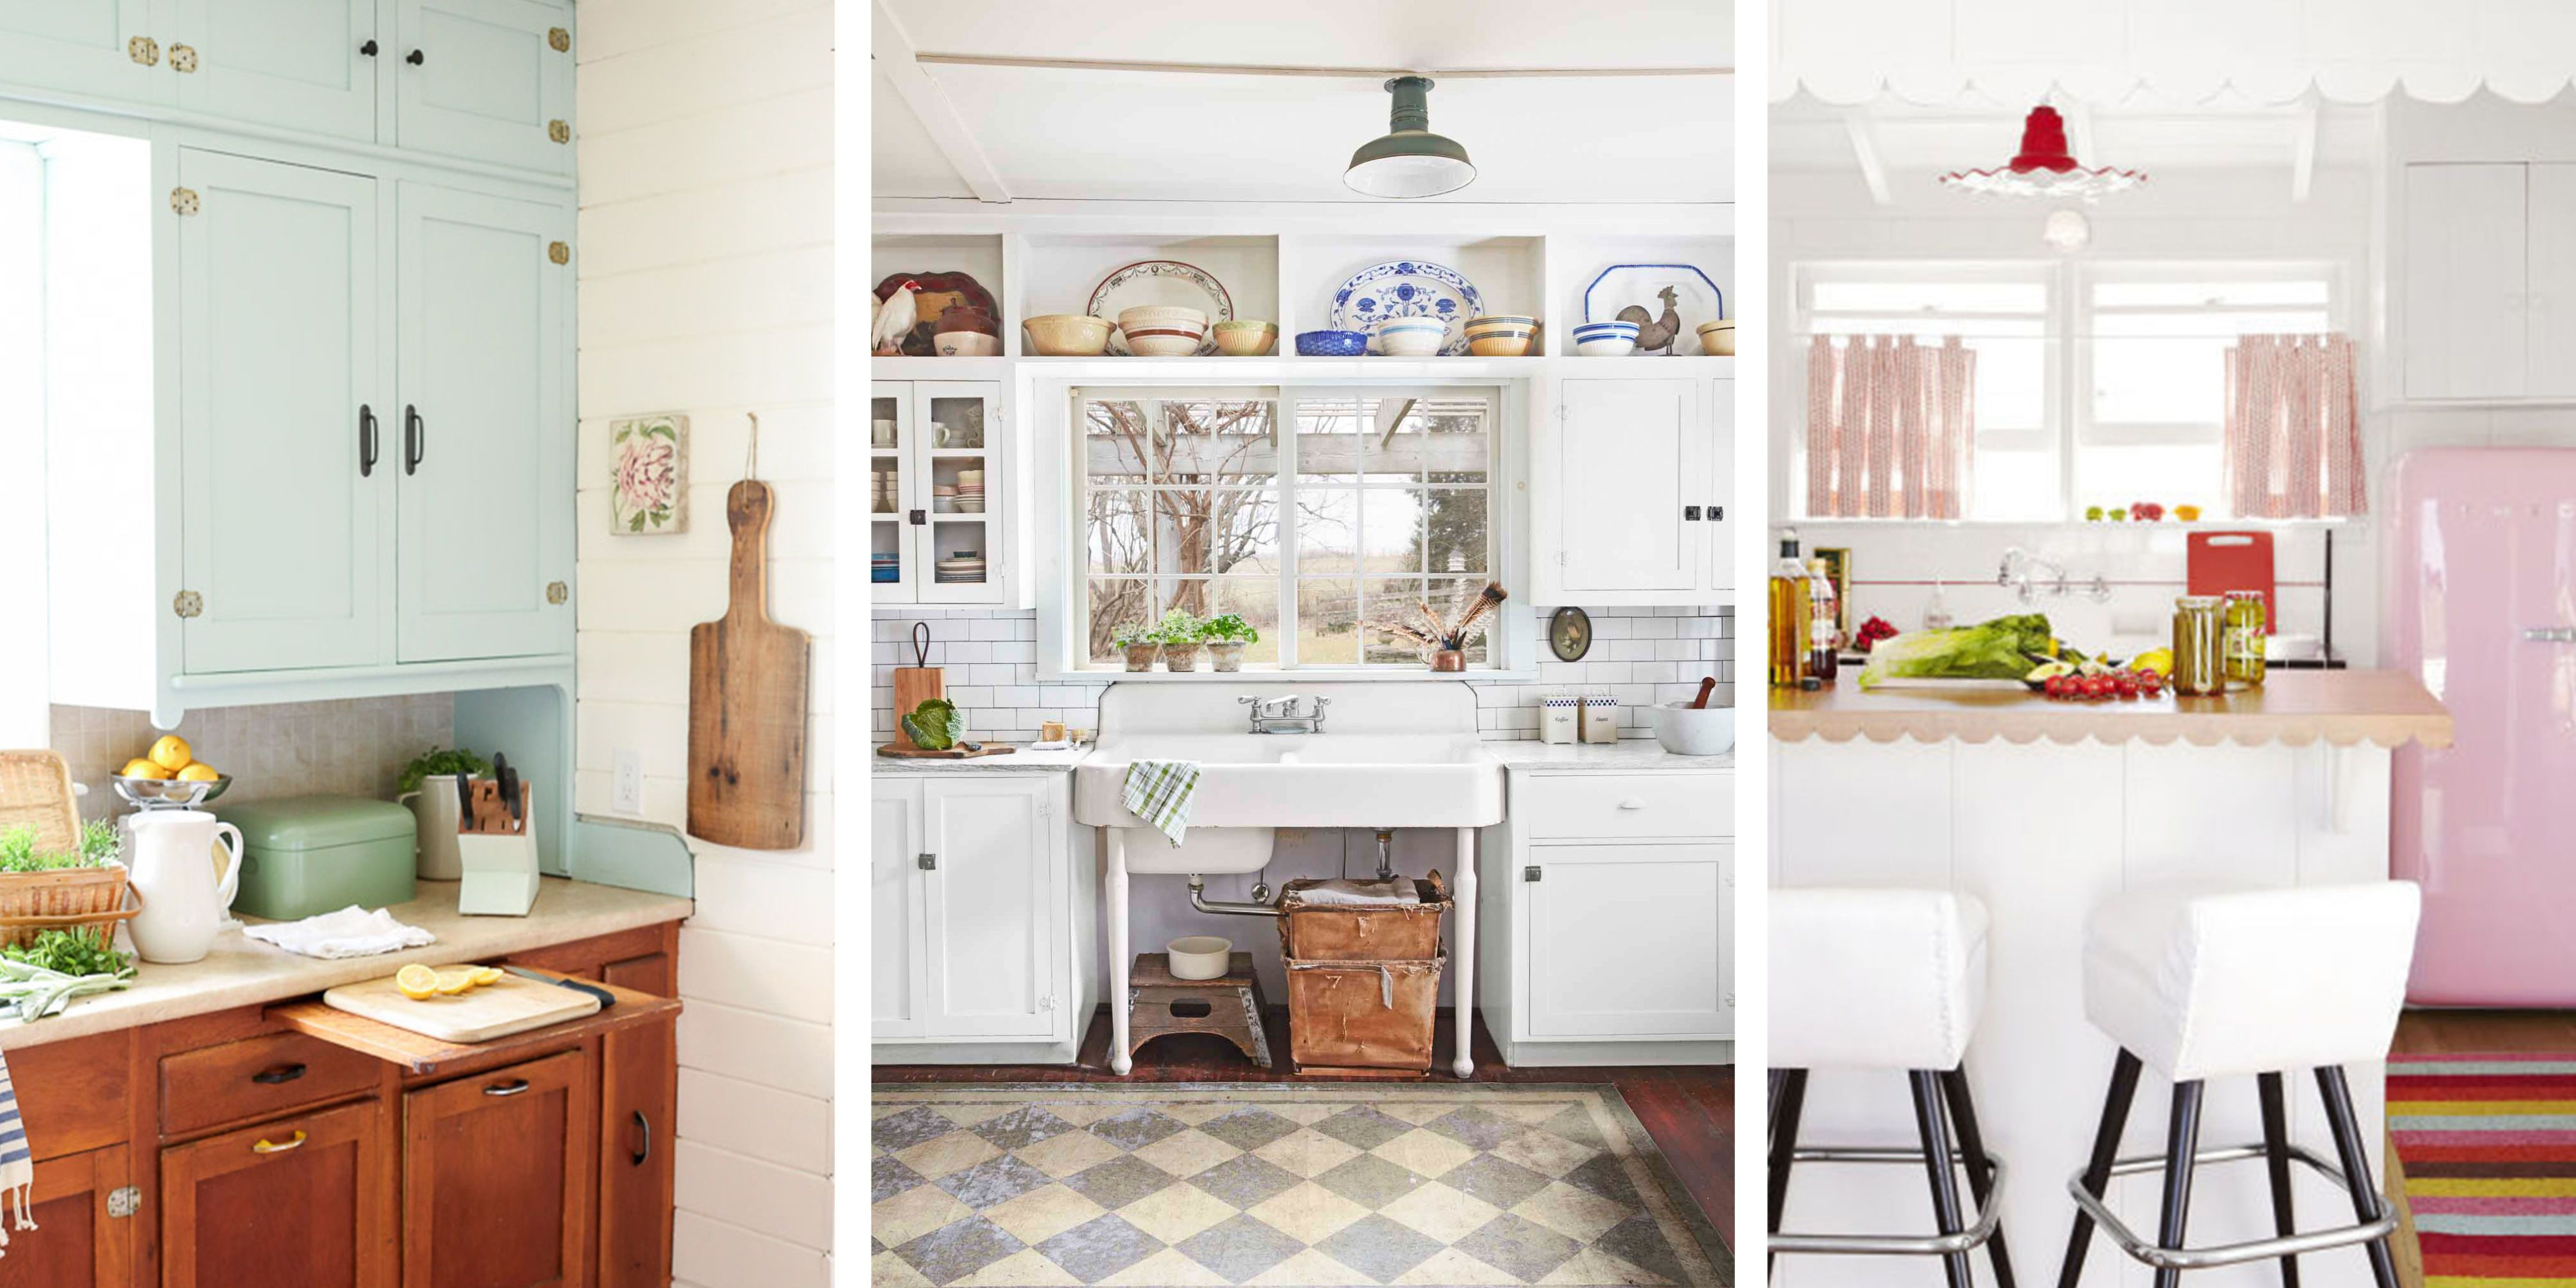 Captivating Checkerboard Floors, Farmhouse Sinks, And Scalloped Accents. Yep, Weu0027re  Rounding Up The Best Of Vintage Kitchensu2014as Modeled On Modern Renditions.